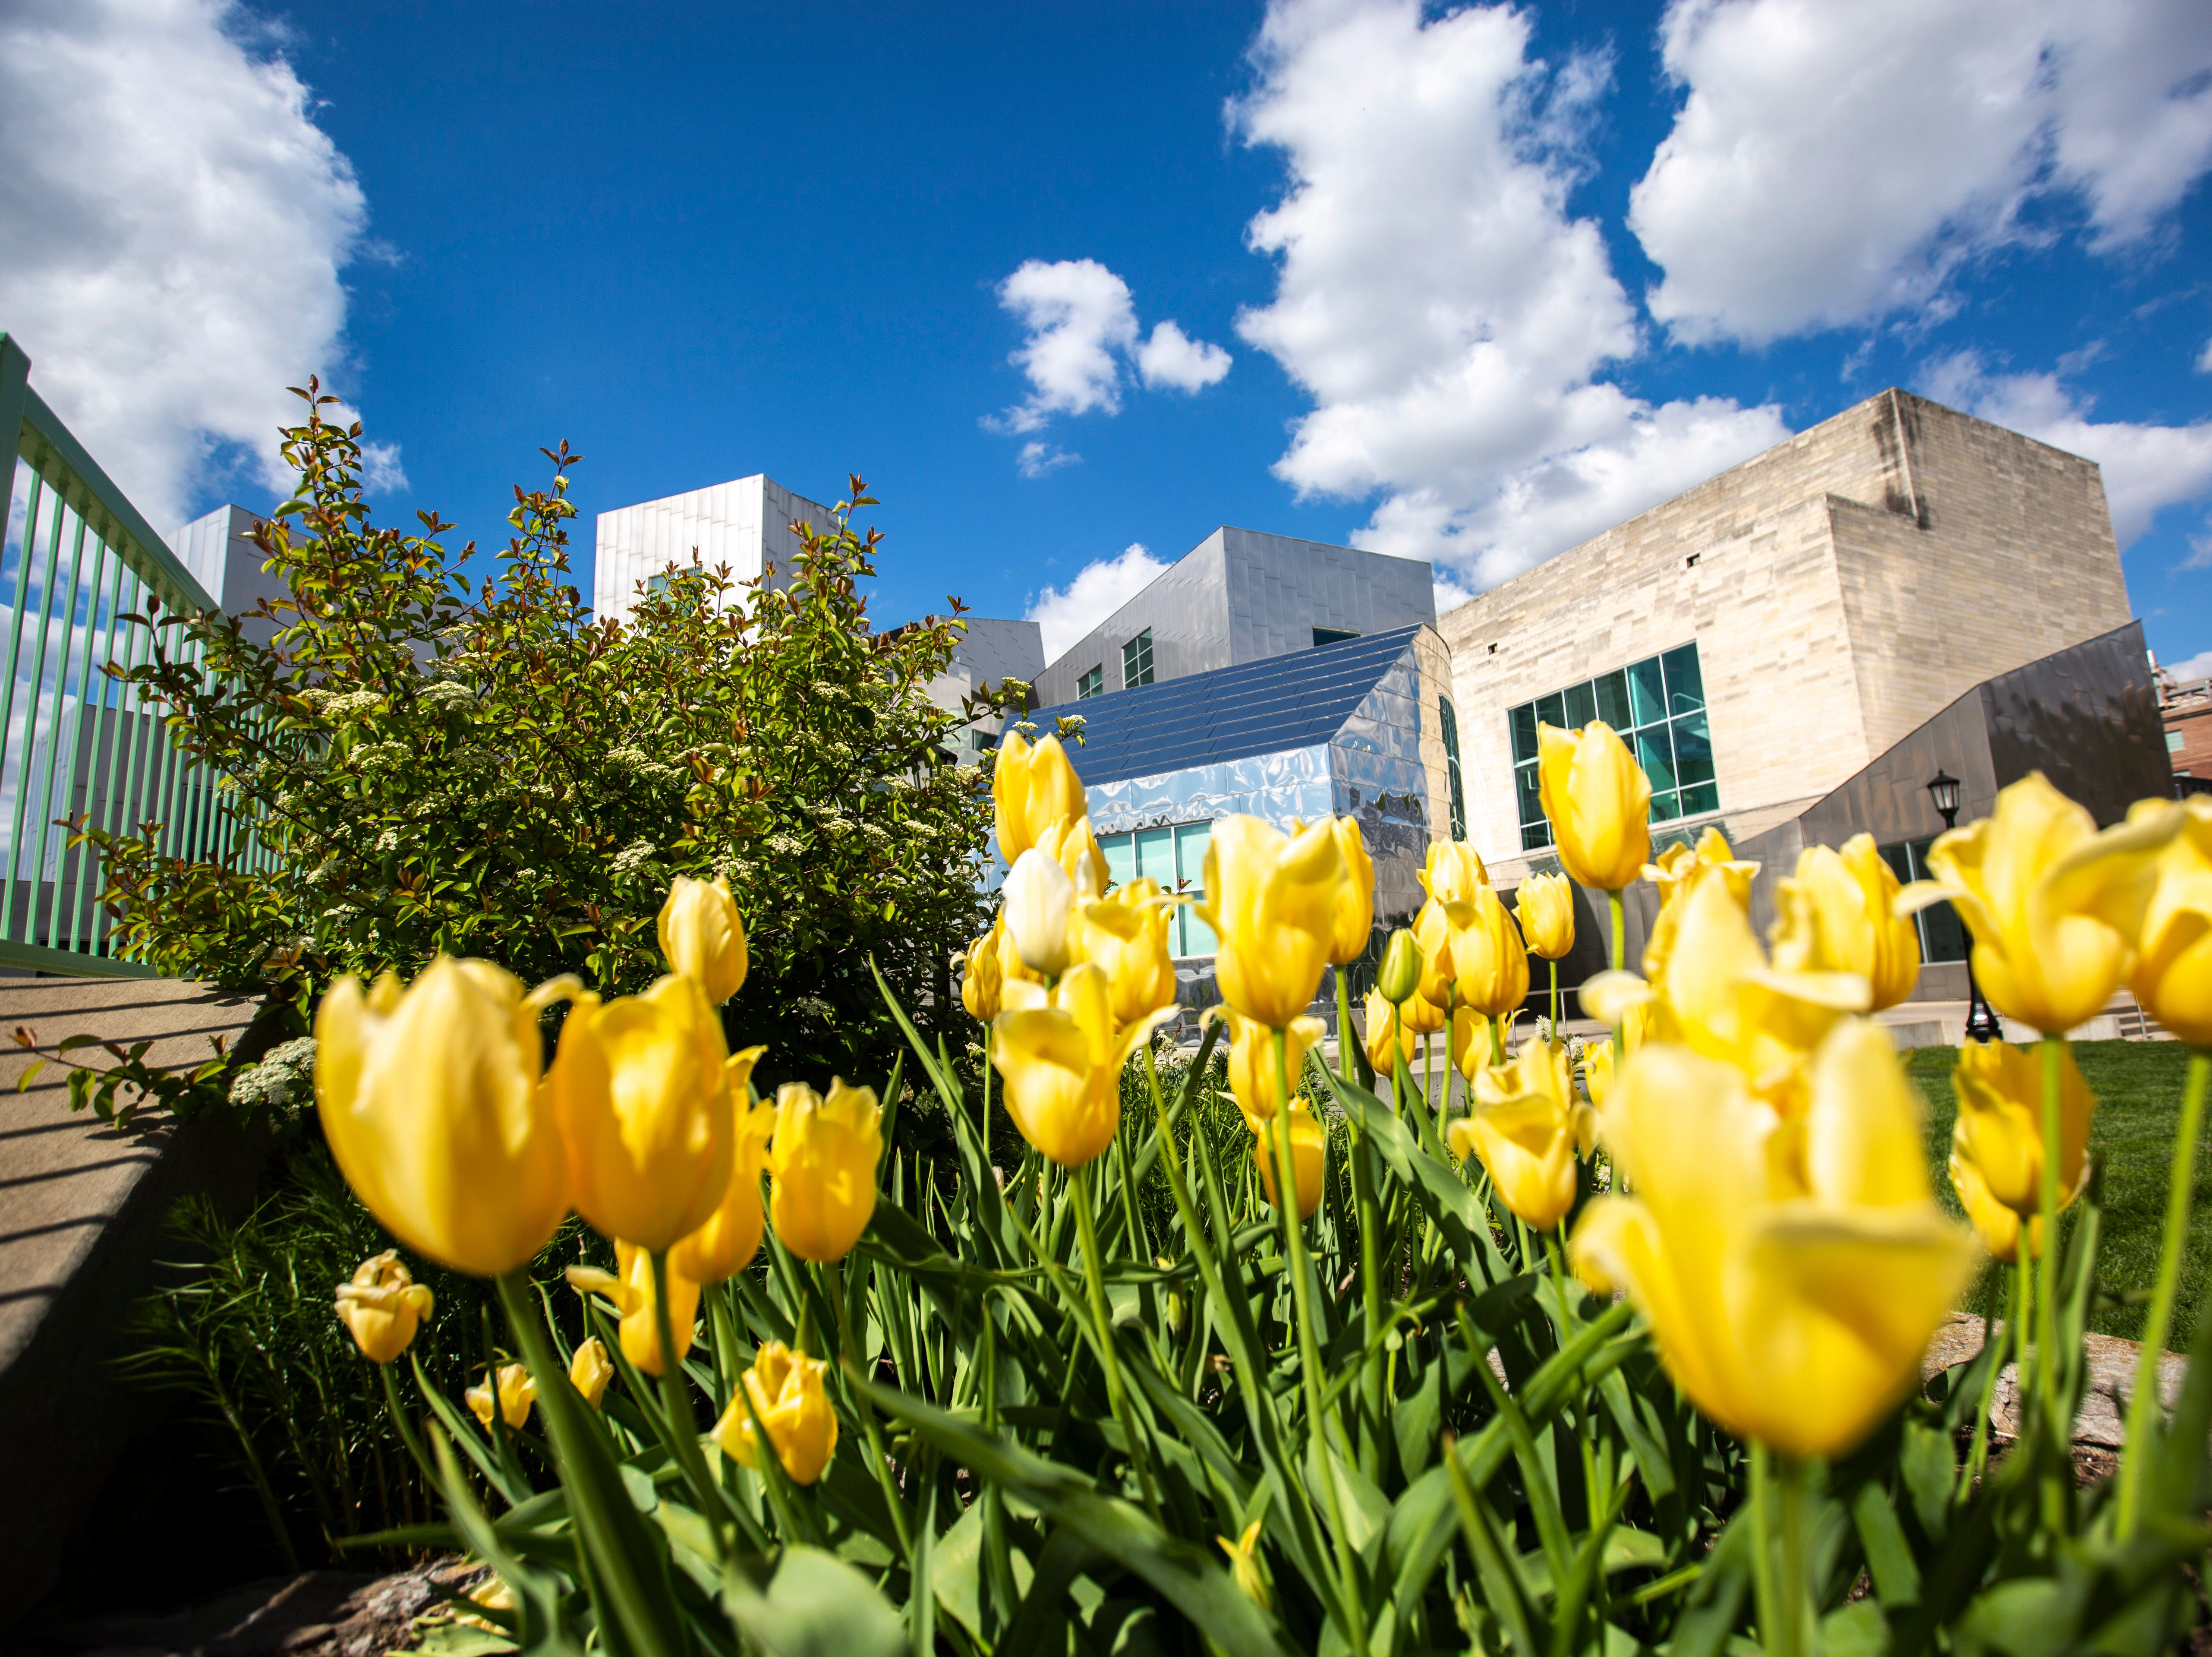 Yellow roses are pictured in the foreground in front of the IATL Iowa Advanced Technology Laboratories during the last day of finals week, Friday, May 10, 2019, on the University of Iowa campus in Iowa City, Iowa.